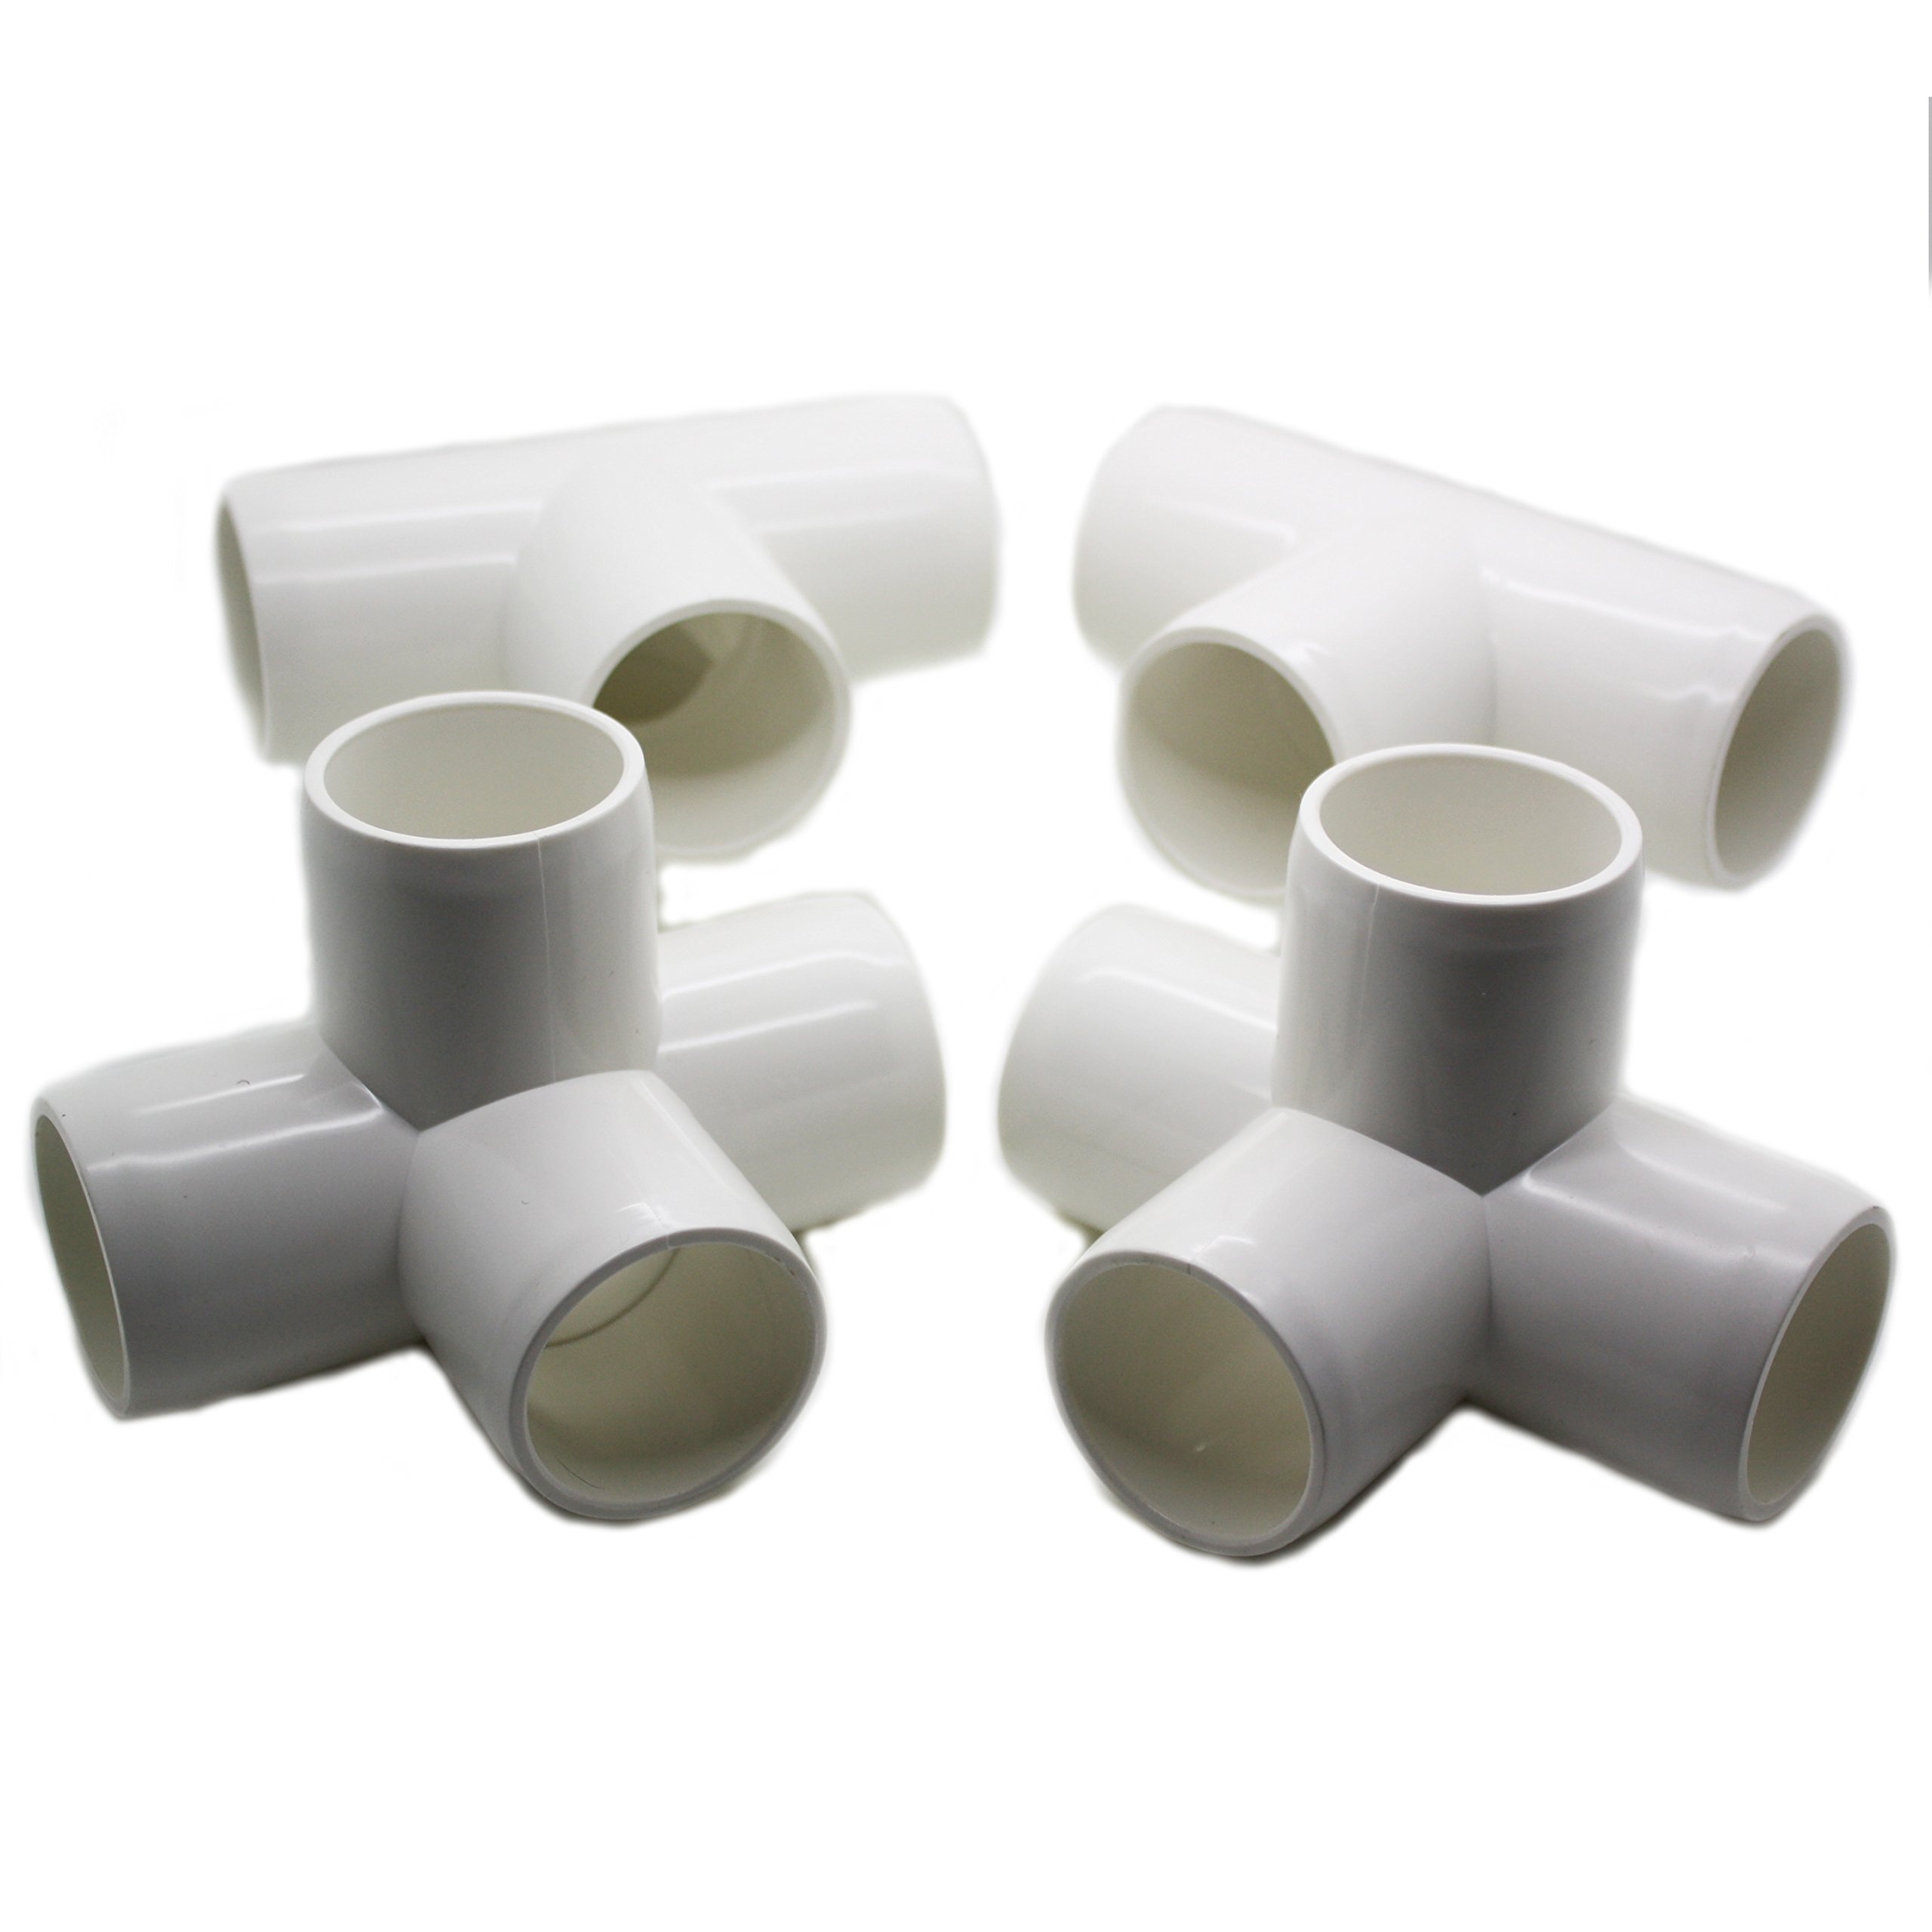 4 Way Tee PVC Fitting - Build Heavy Duty PVC Furniture - Grade SCH 40 PVC 1'' Elbow Fittings - For One Inch Size Pipe - White [4 Pack]